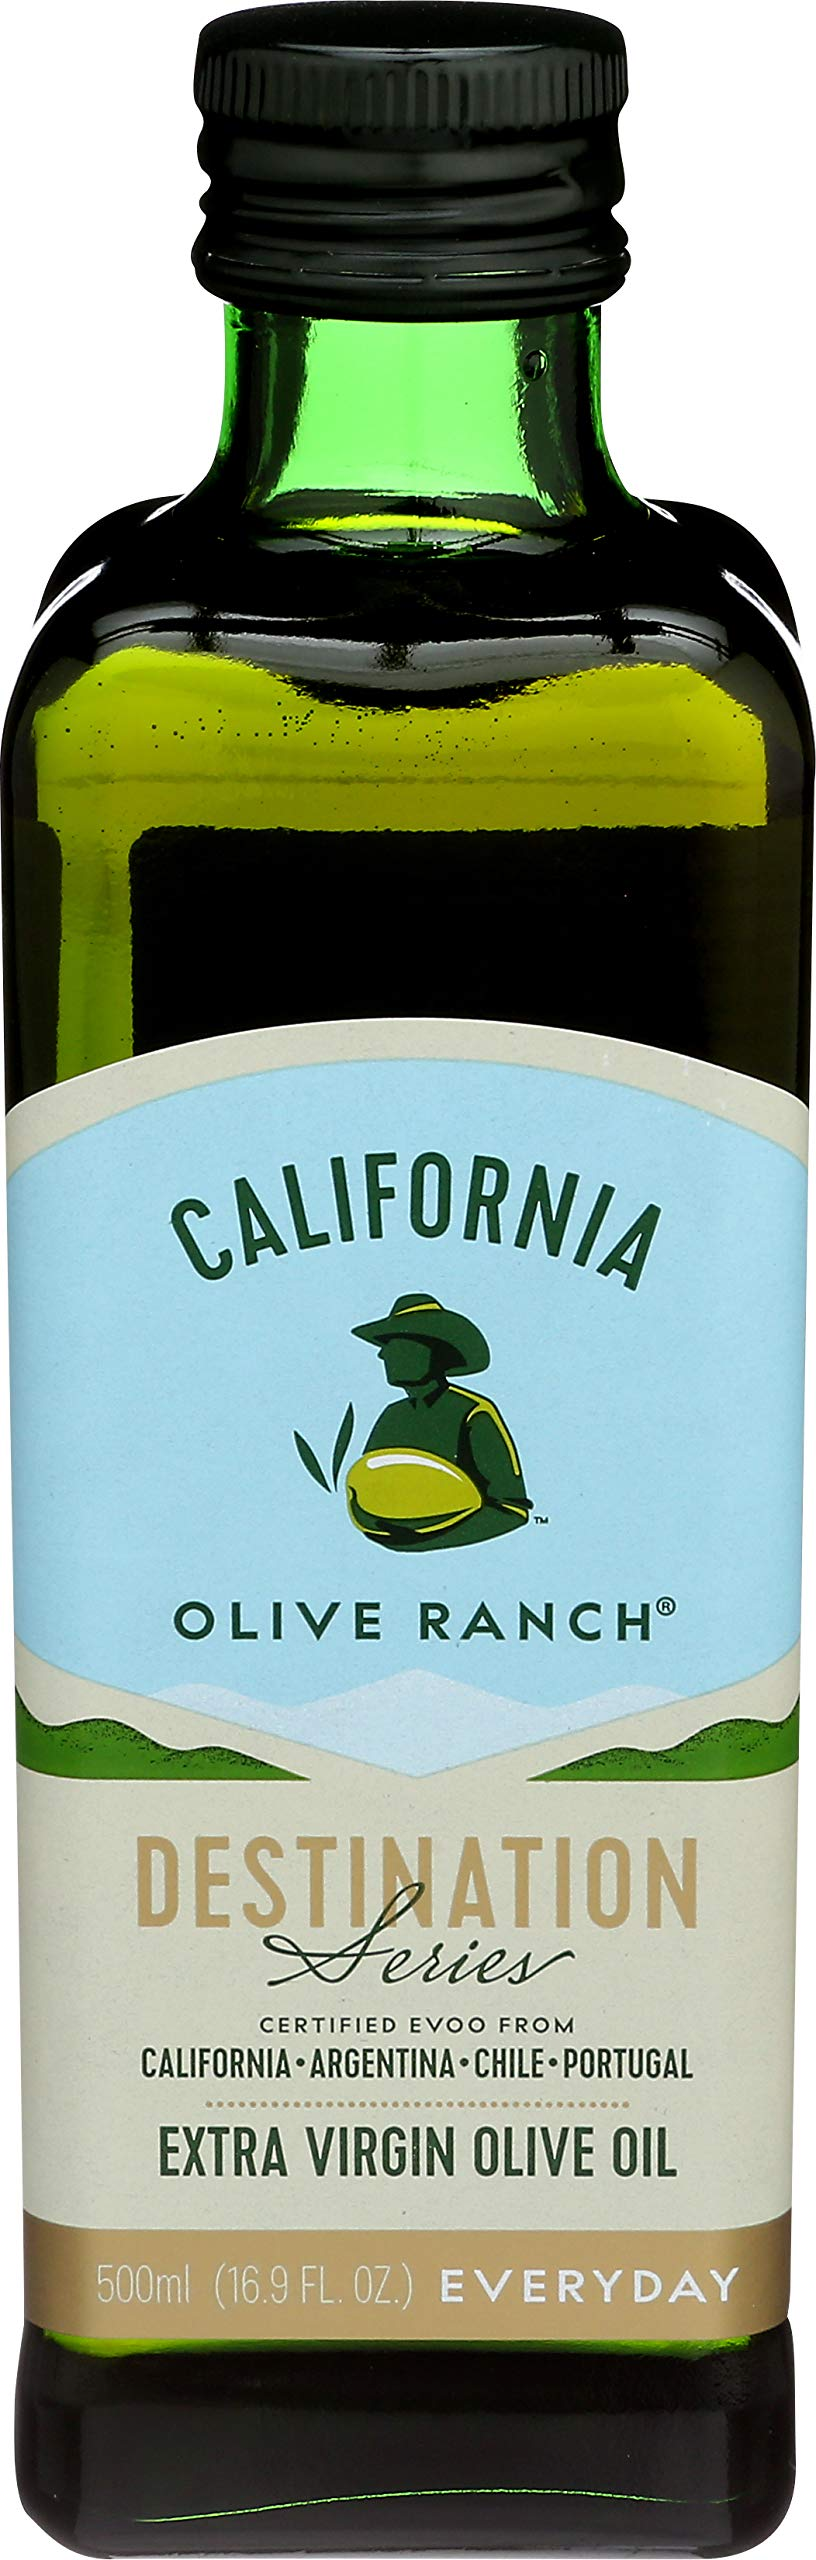 California Olive Ranch 16.9 OZ - Pack of 4 by California Olive Ranch